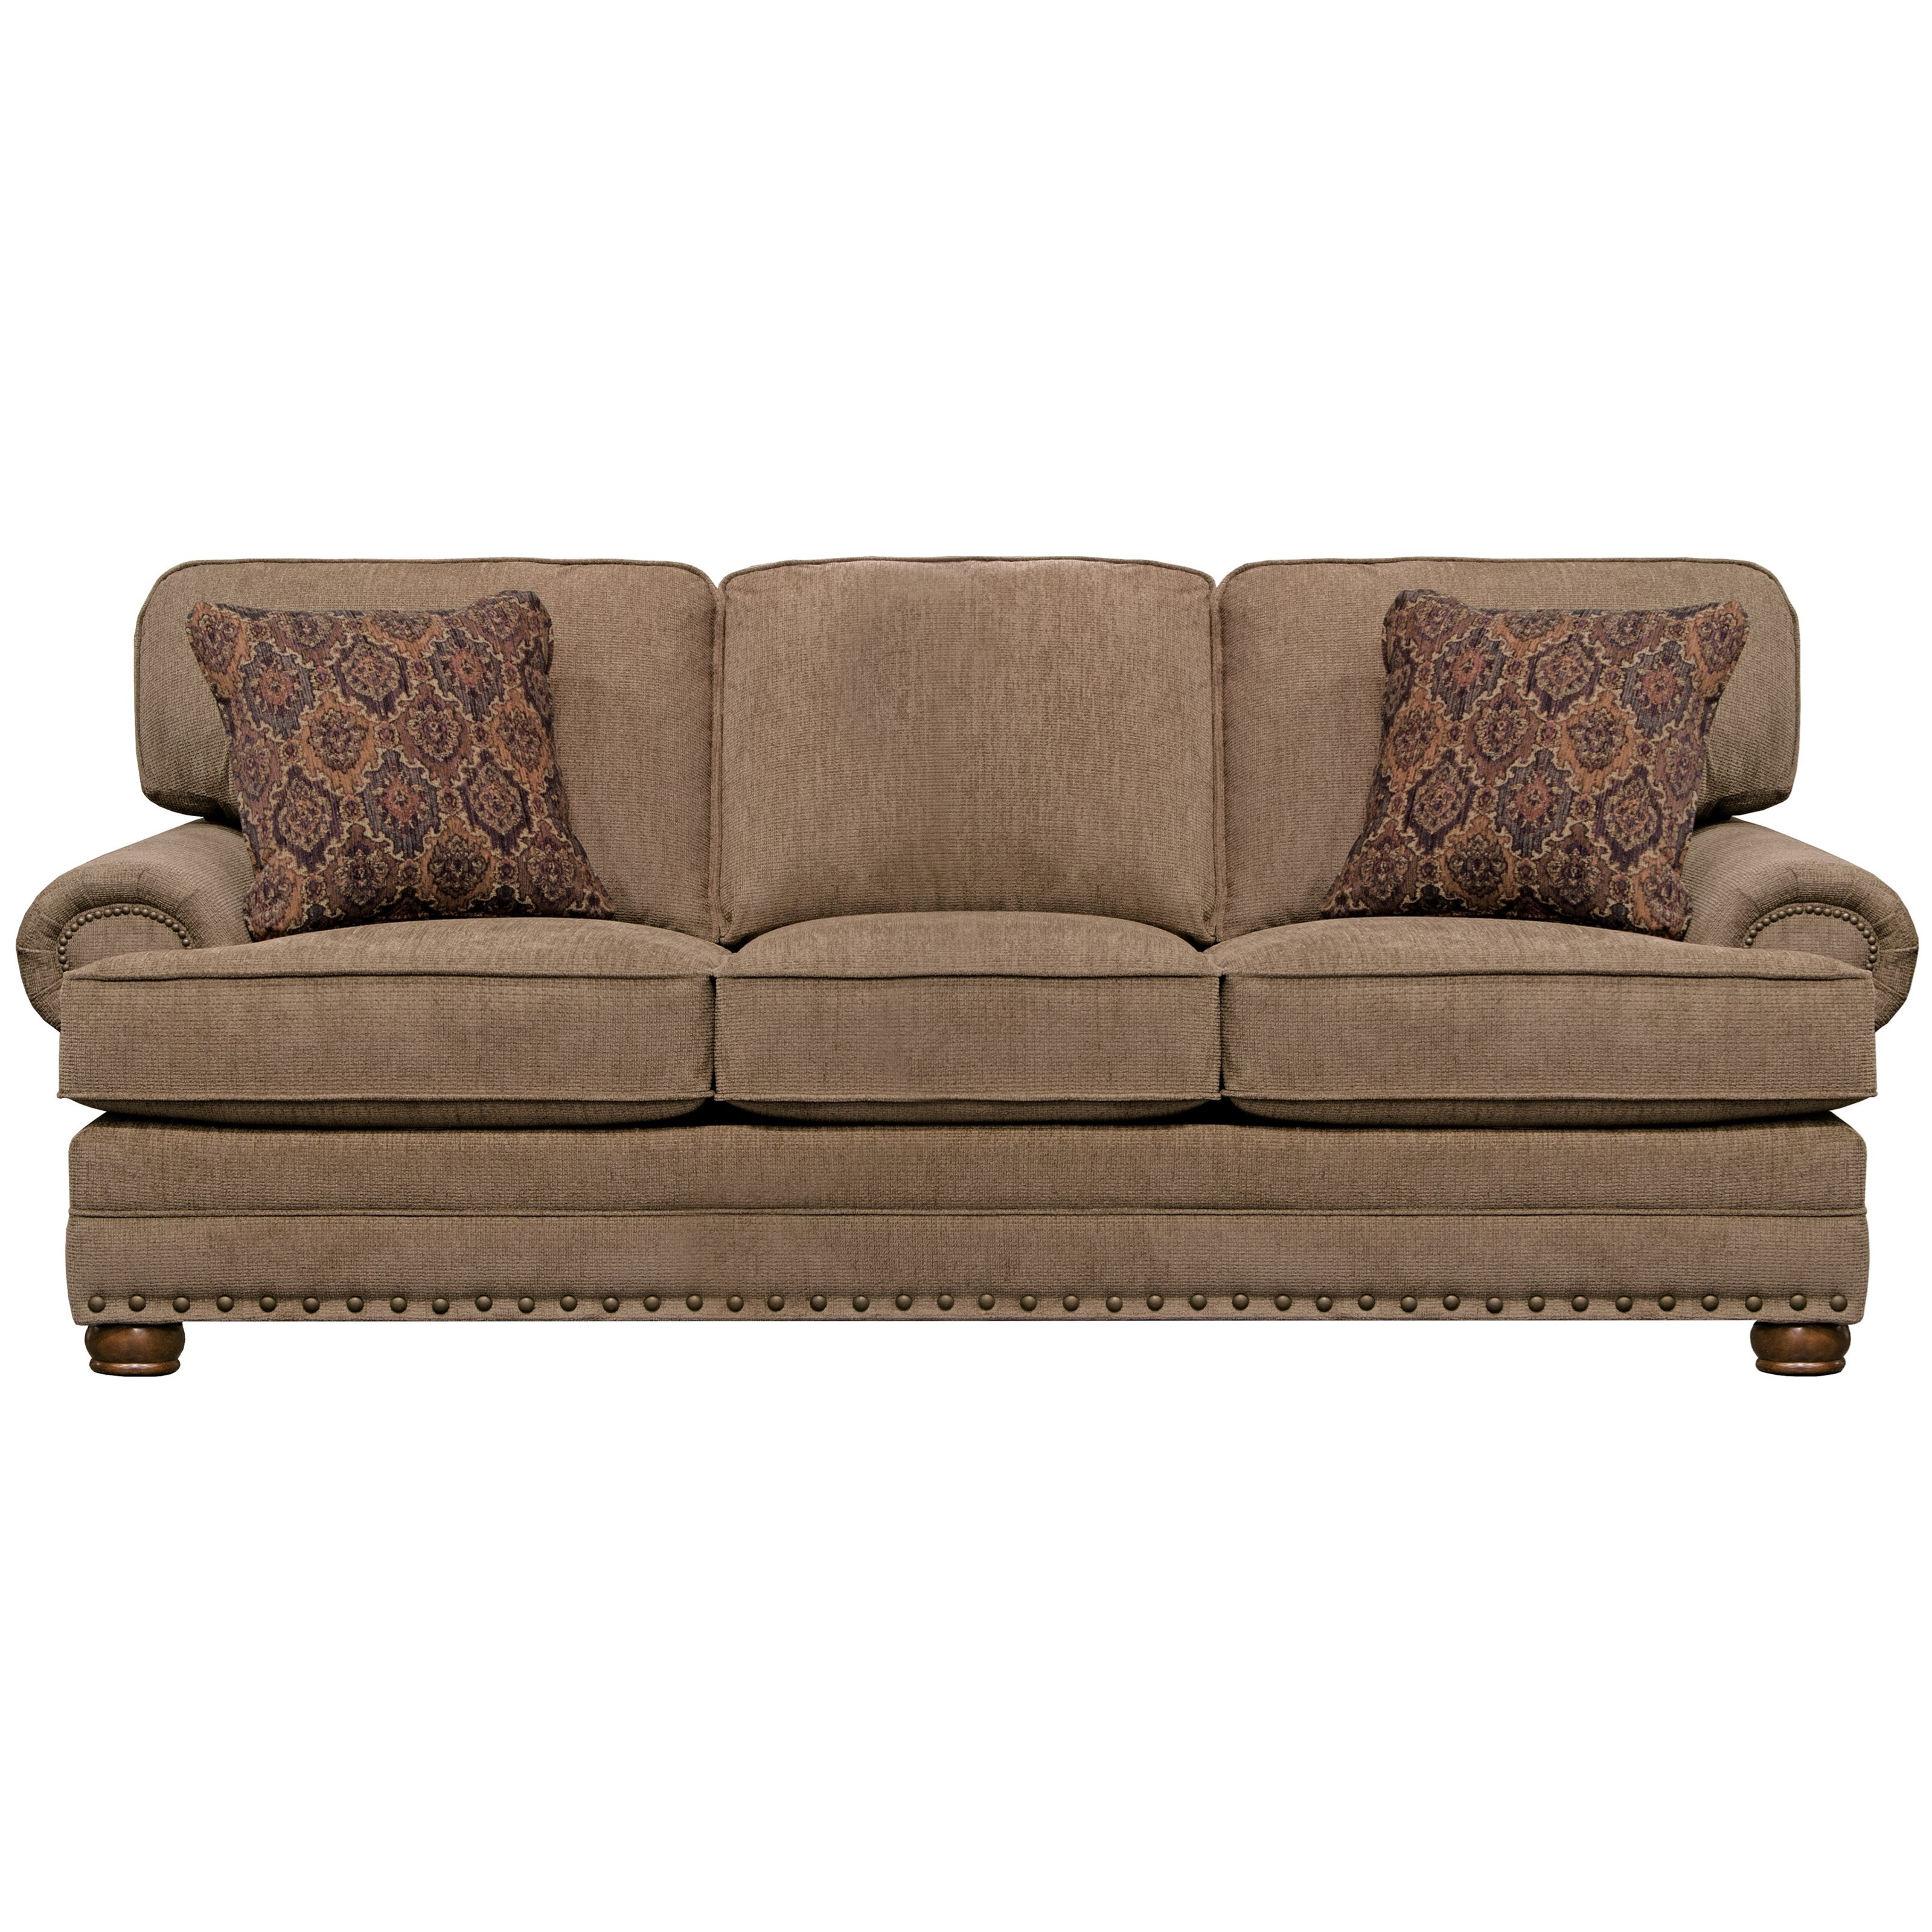 Singletary Queen Sleeper by Jackson Furniture at Zak's Home